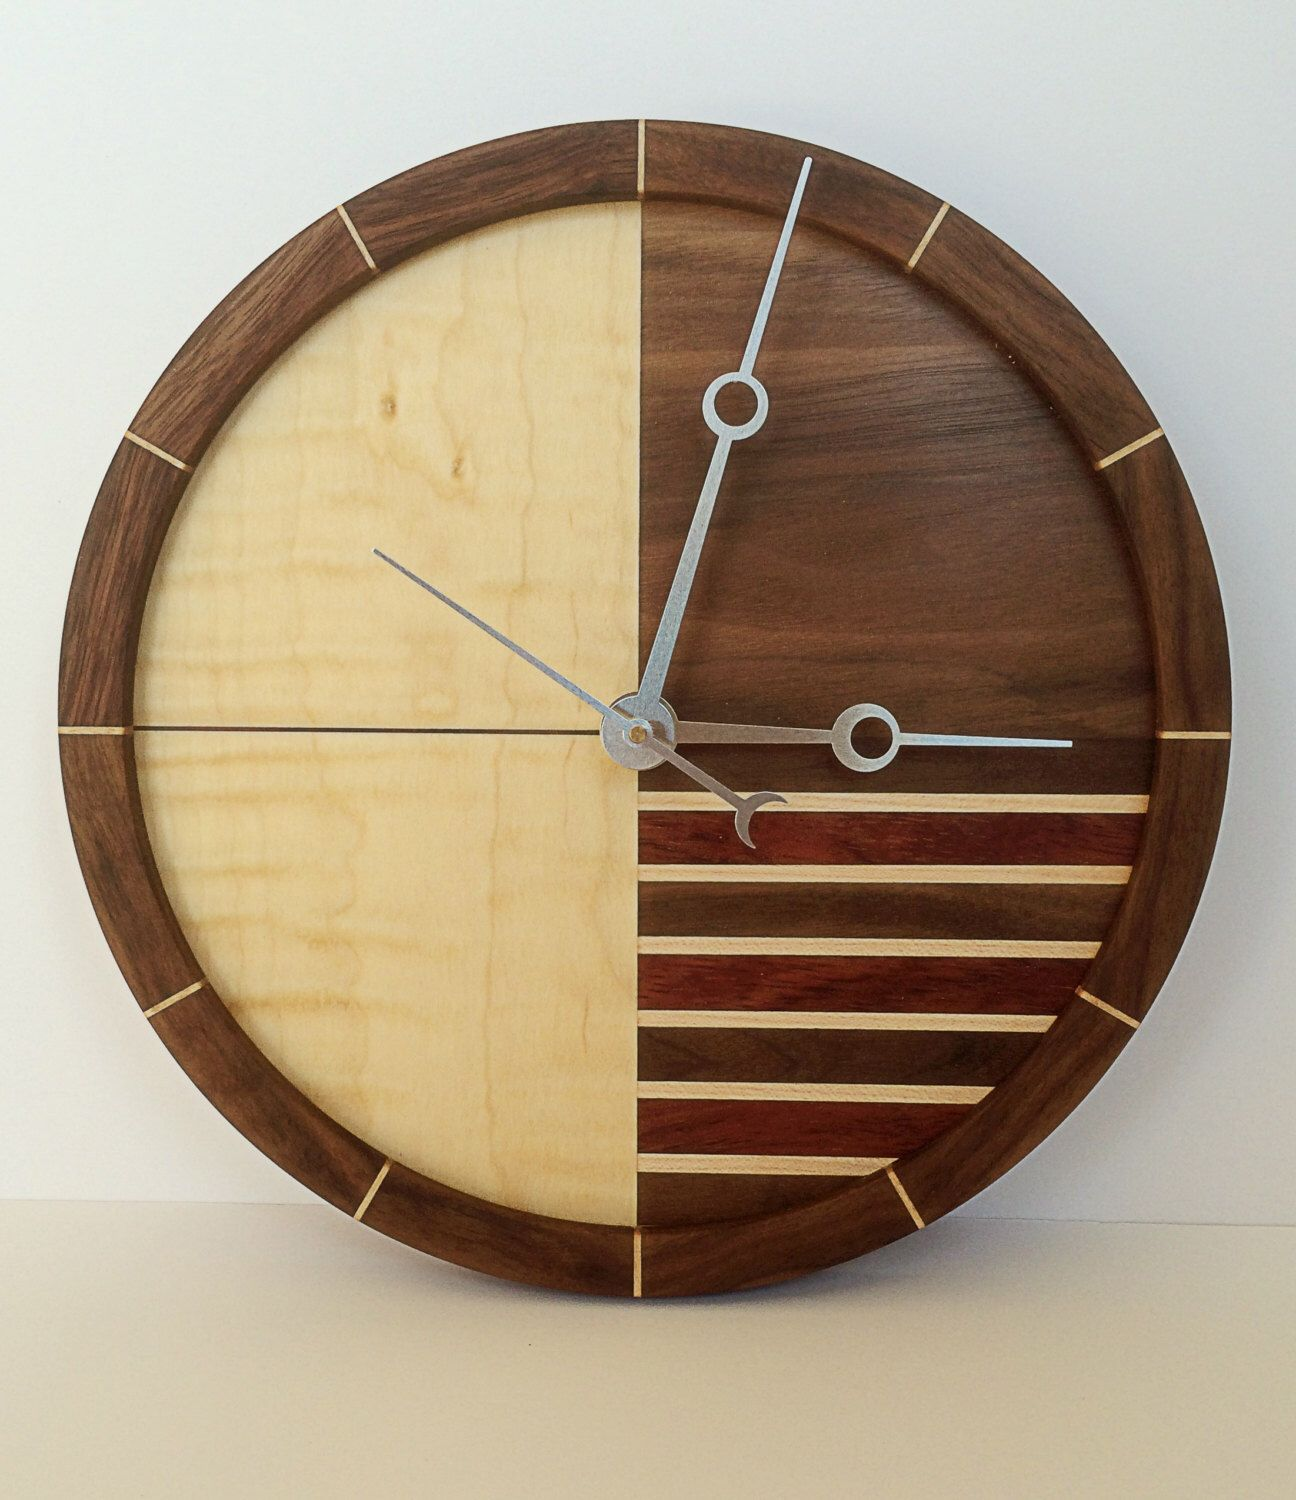 Wooden Clock by WhitesideWoodworking on Etsy https://www.etsy.com ...